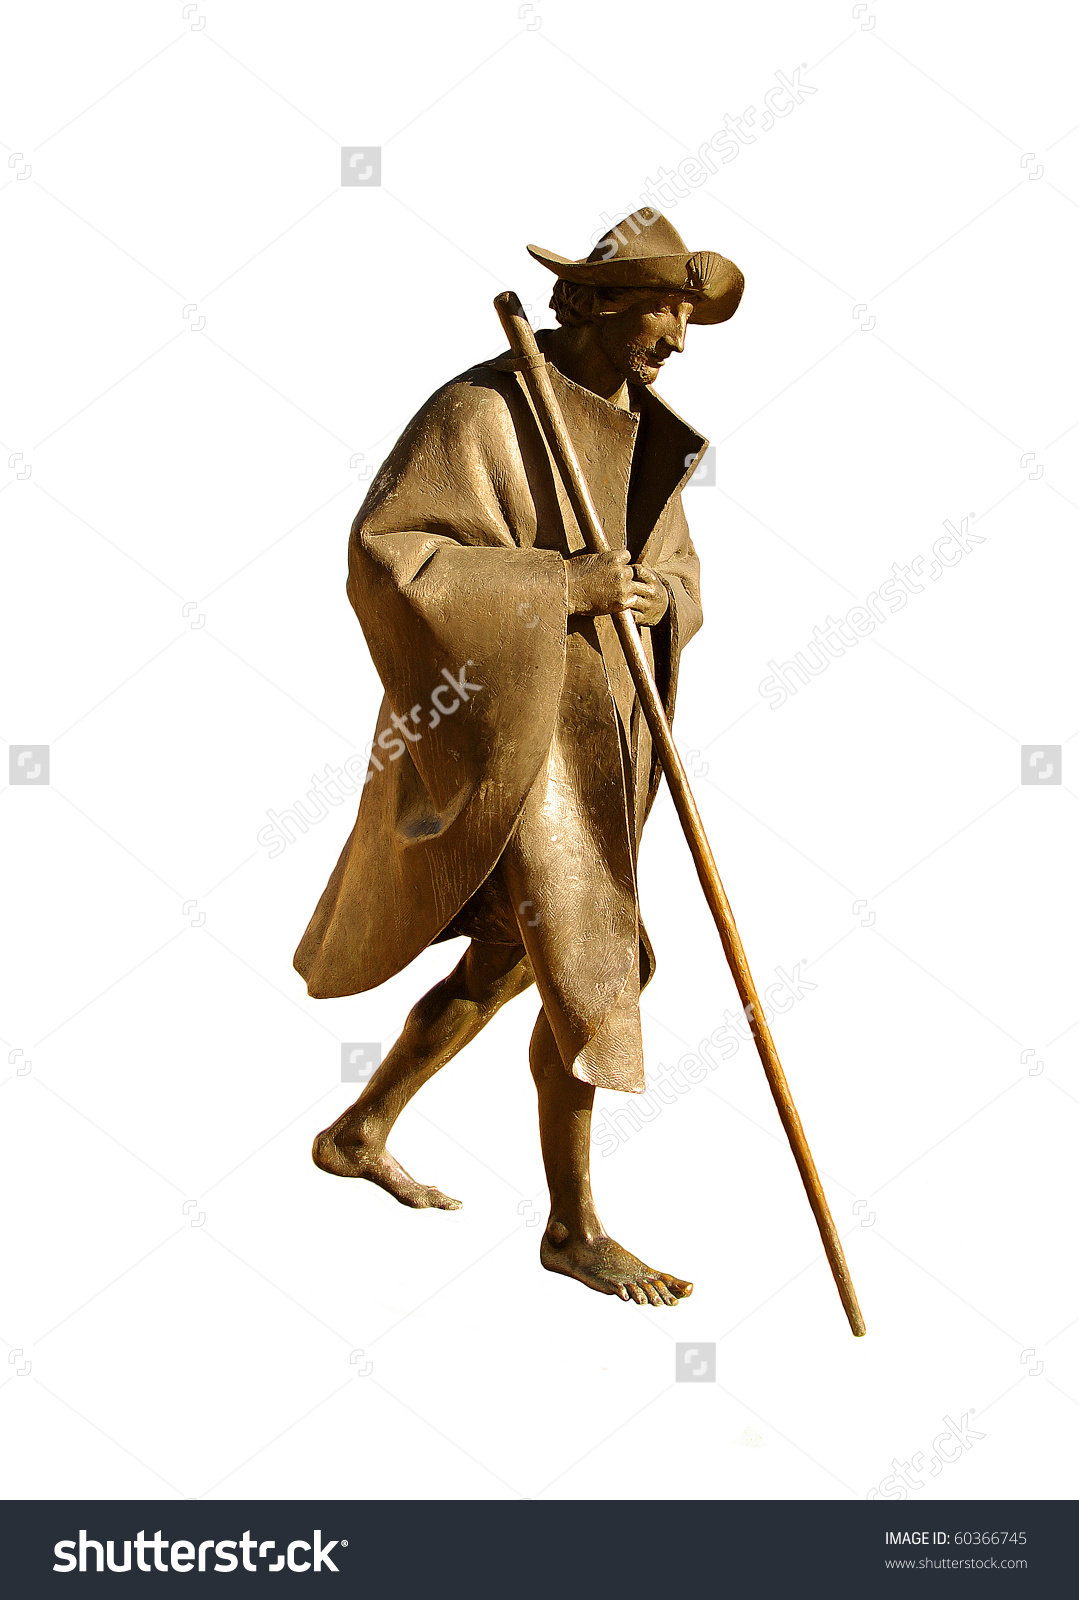 Pilgrim Statue At Speyer Cathedral Stock Photo 60366745 : Shutterstock.